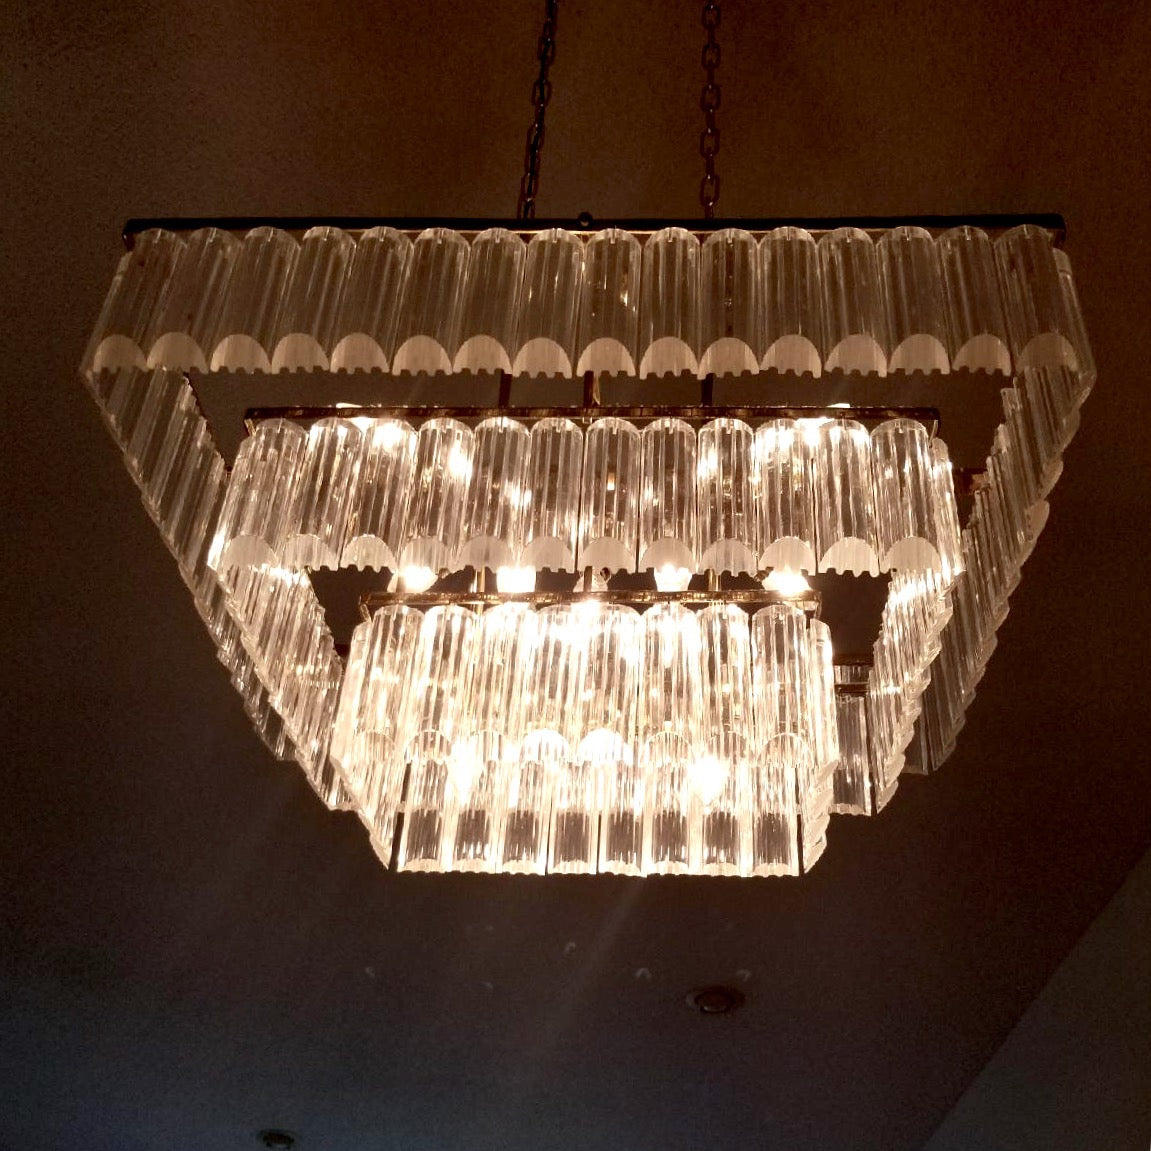 b id oval shaped at f lighting lucite lights chandelier furniture pendant vintage chandeliers